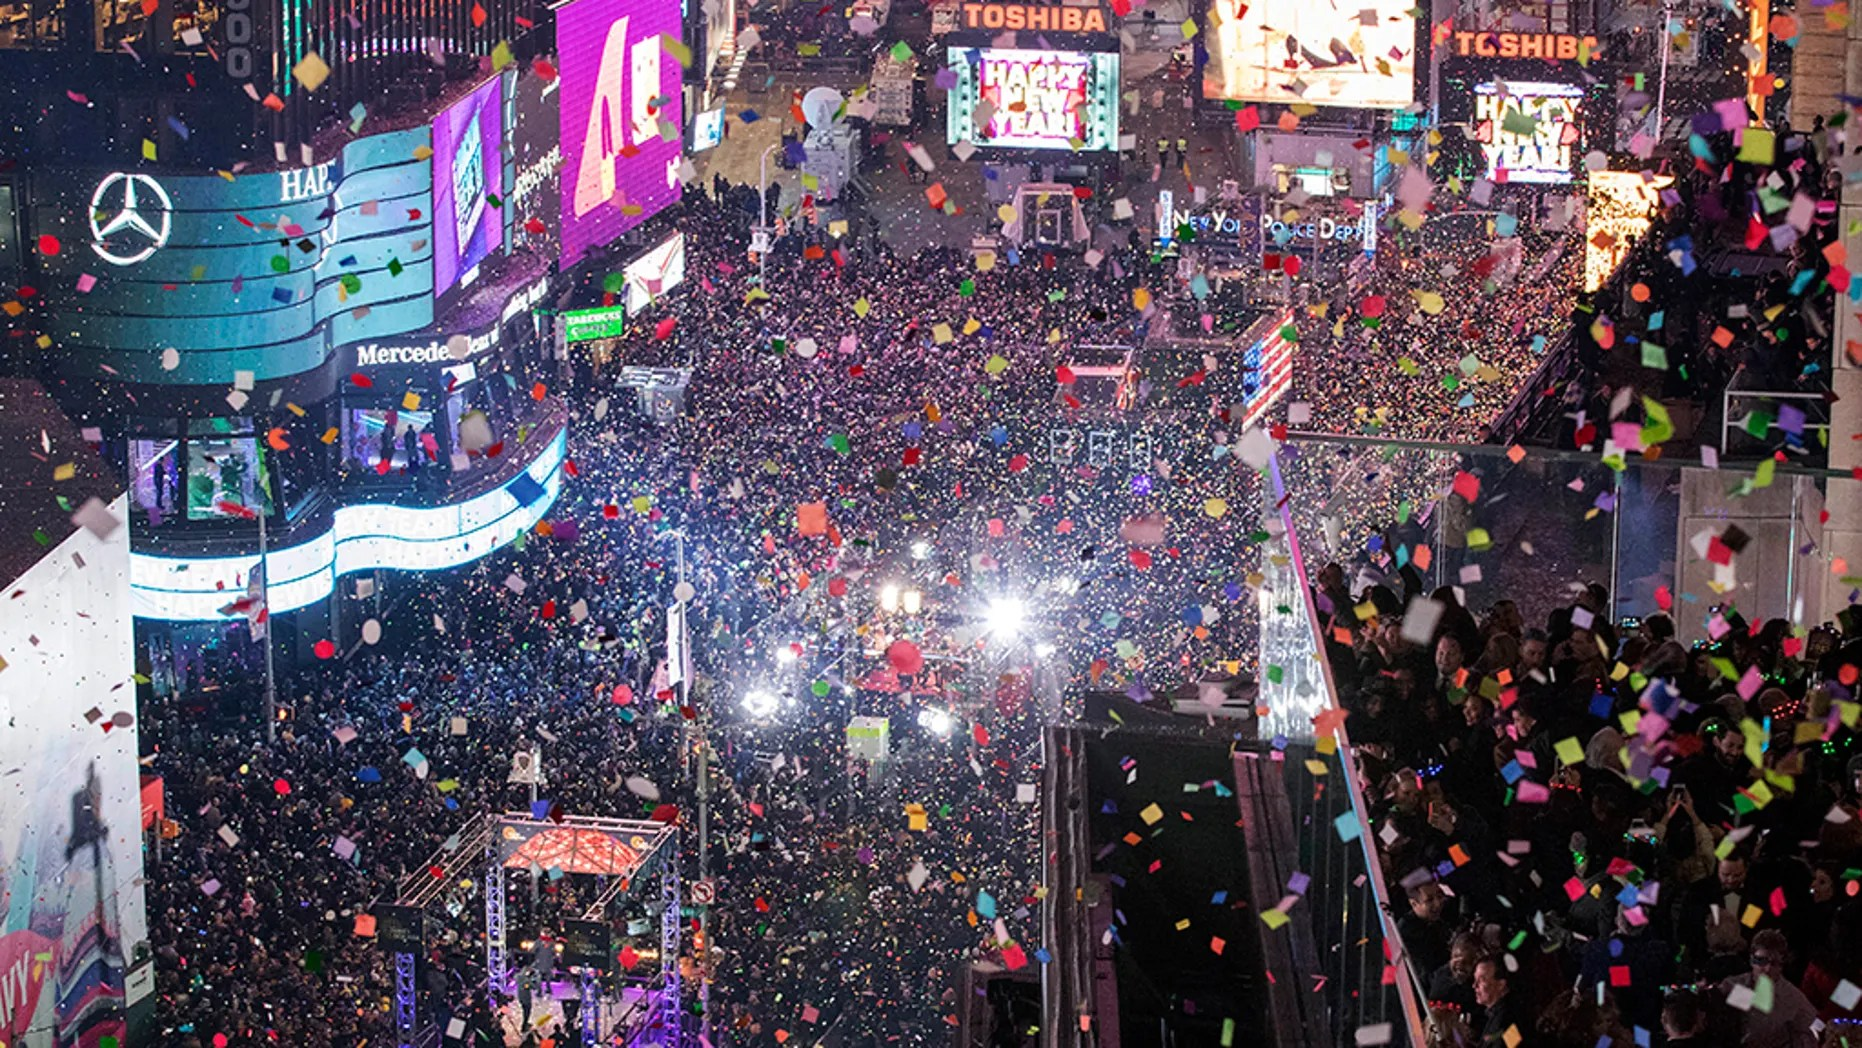 In this Jan. 1, 2017 file photo, revelers celebrate the new year as confetti flies over New York's Times Square. (AP Photo/Mary Altaffer, File)